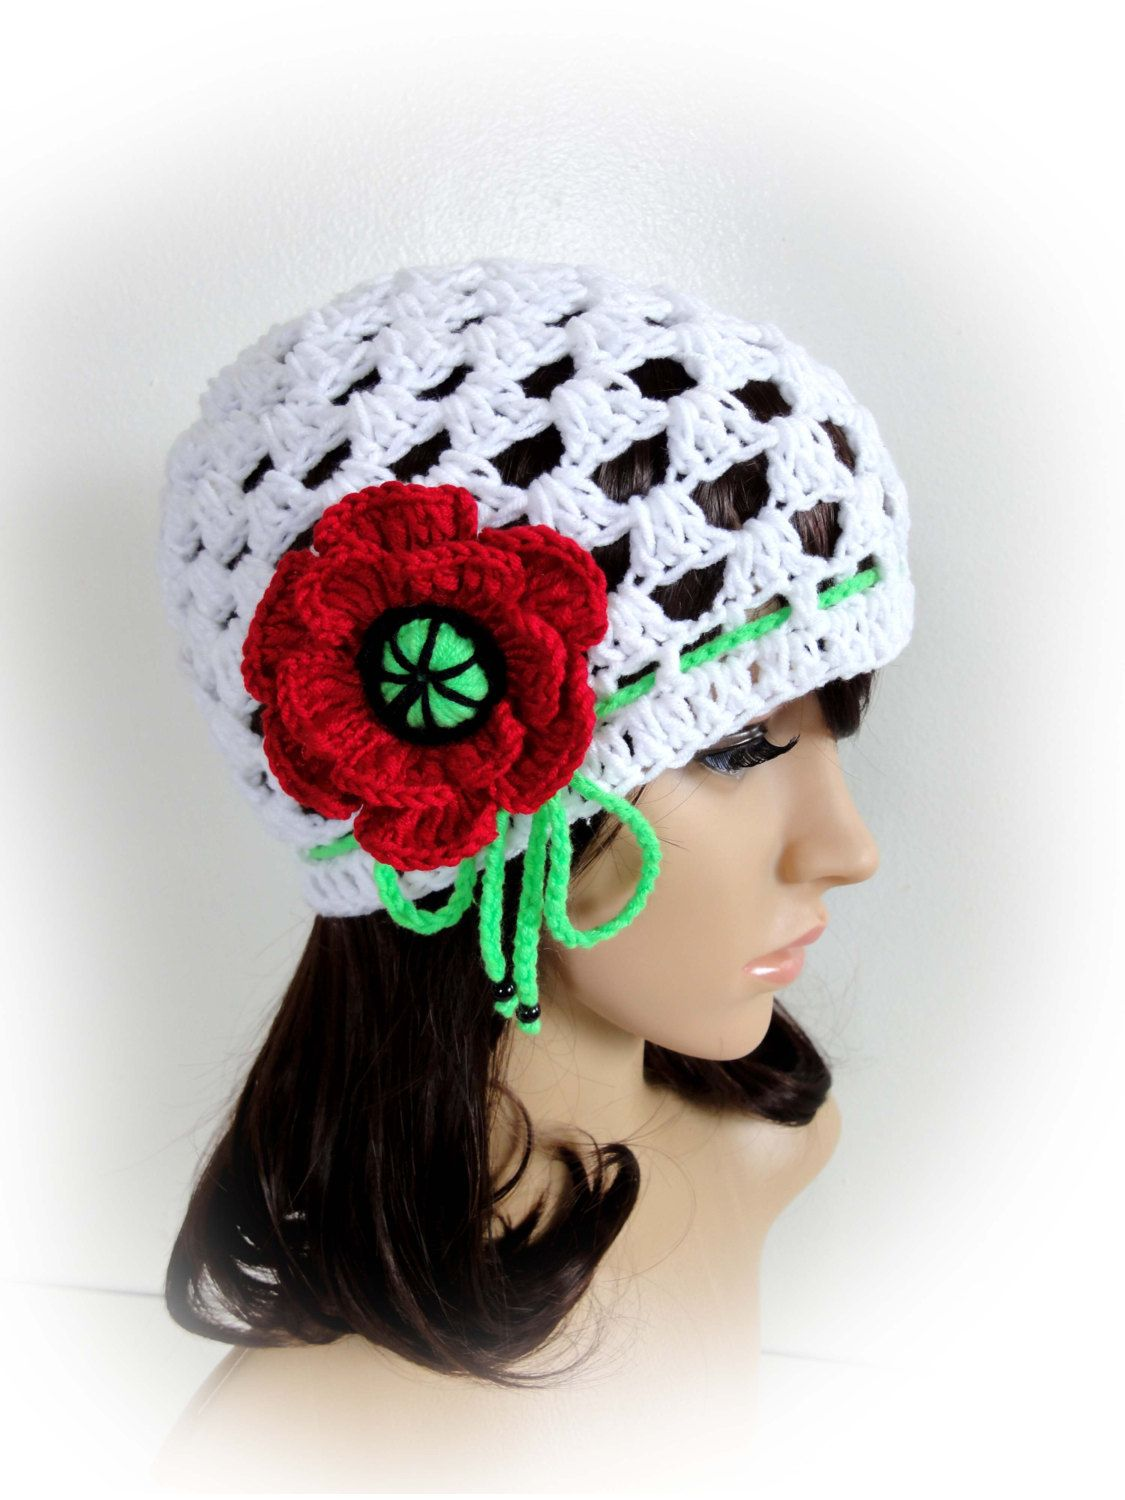 Crochet Net Hat. White or 23 Colors. Adjustable with a Drawstring. Crochet Flower Poppy. Open Stitch Spring Summer Beanie. Women and Teens. by VividBear on Etsy ♡